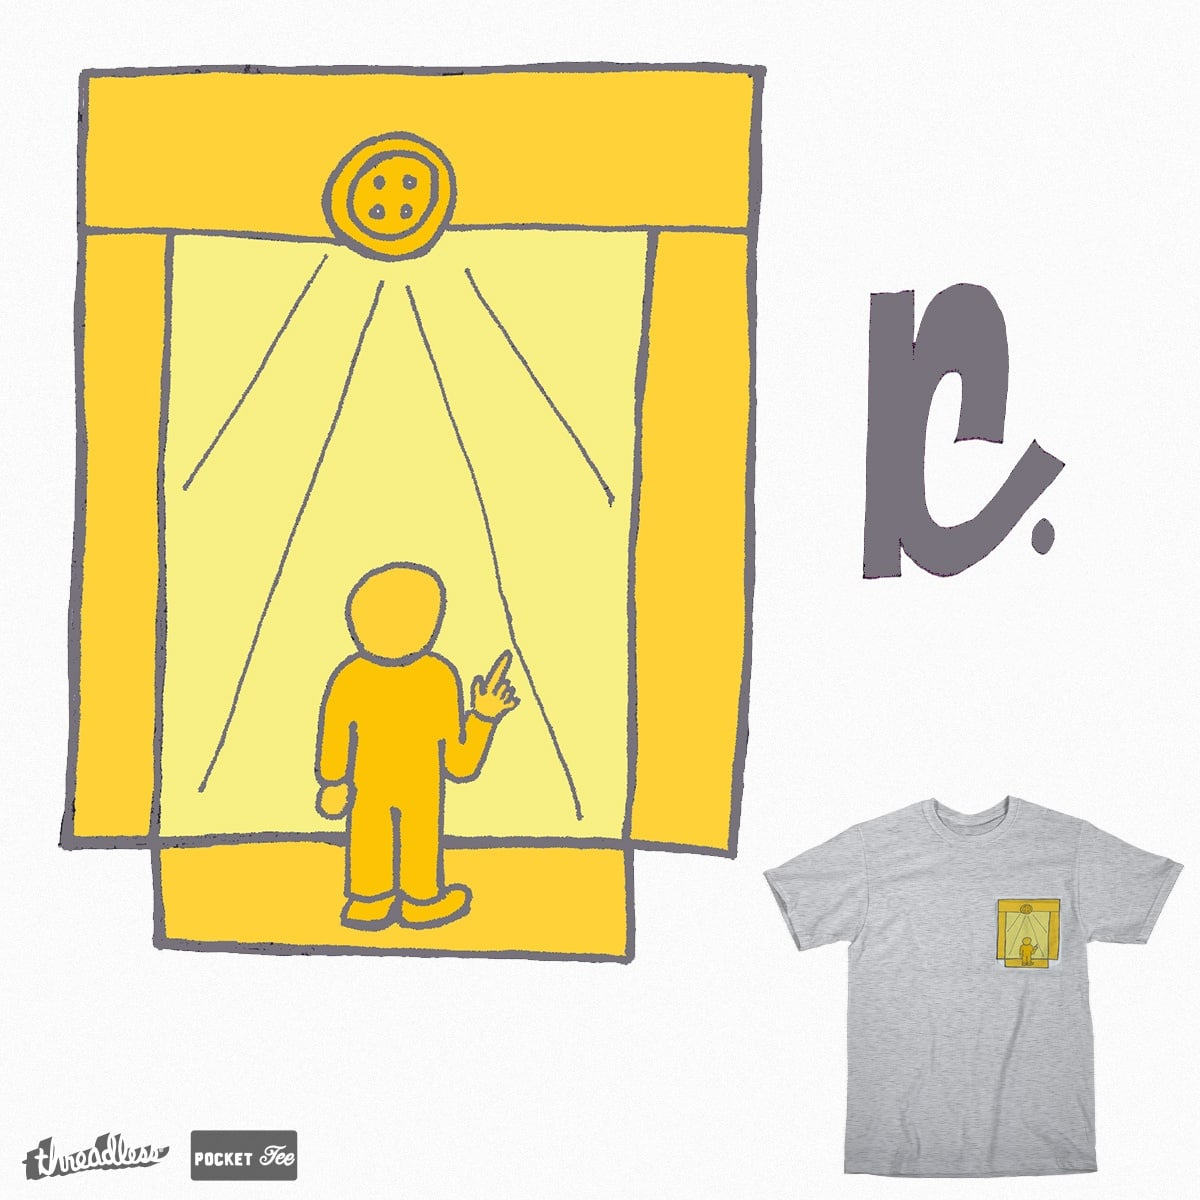 Pocket Gate by Kettleheadmex on Threadless